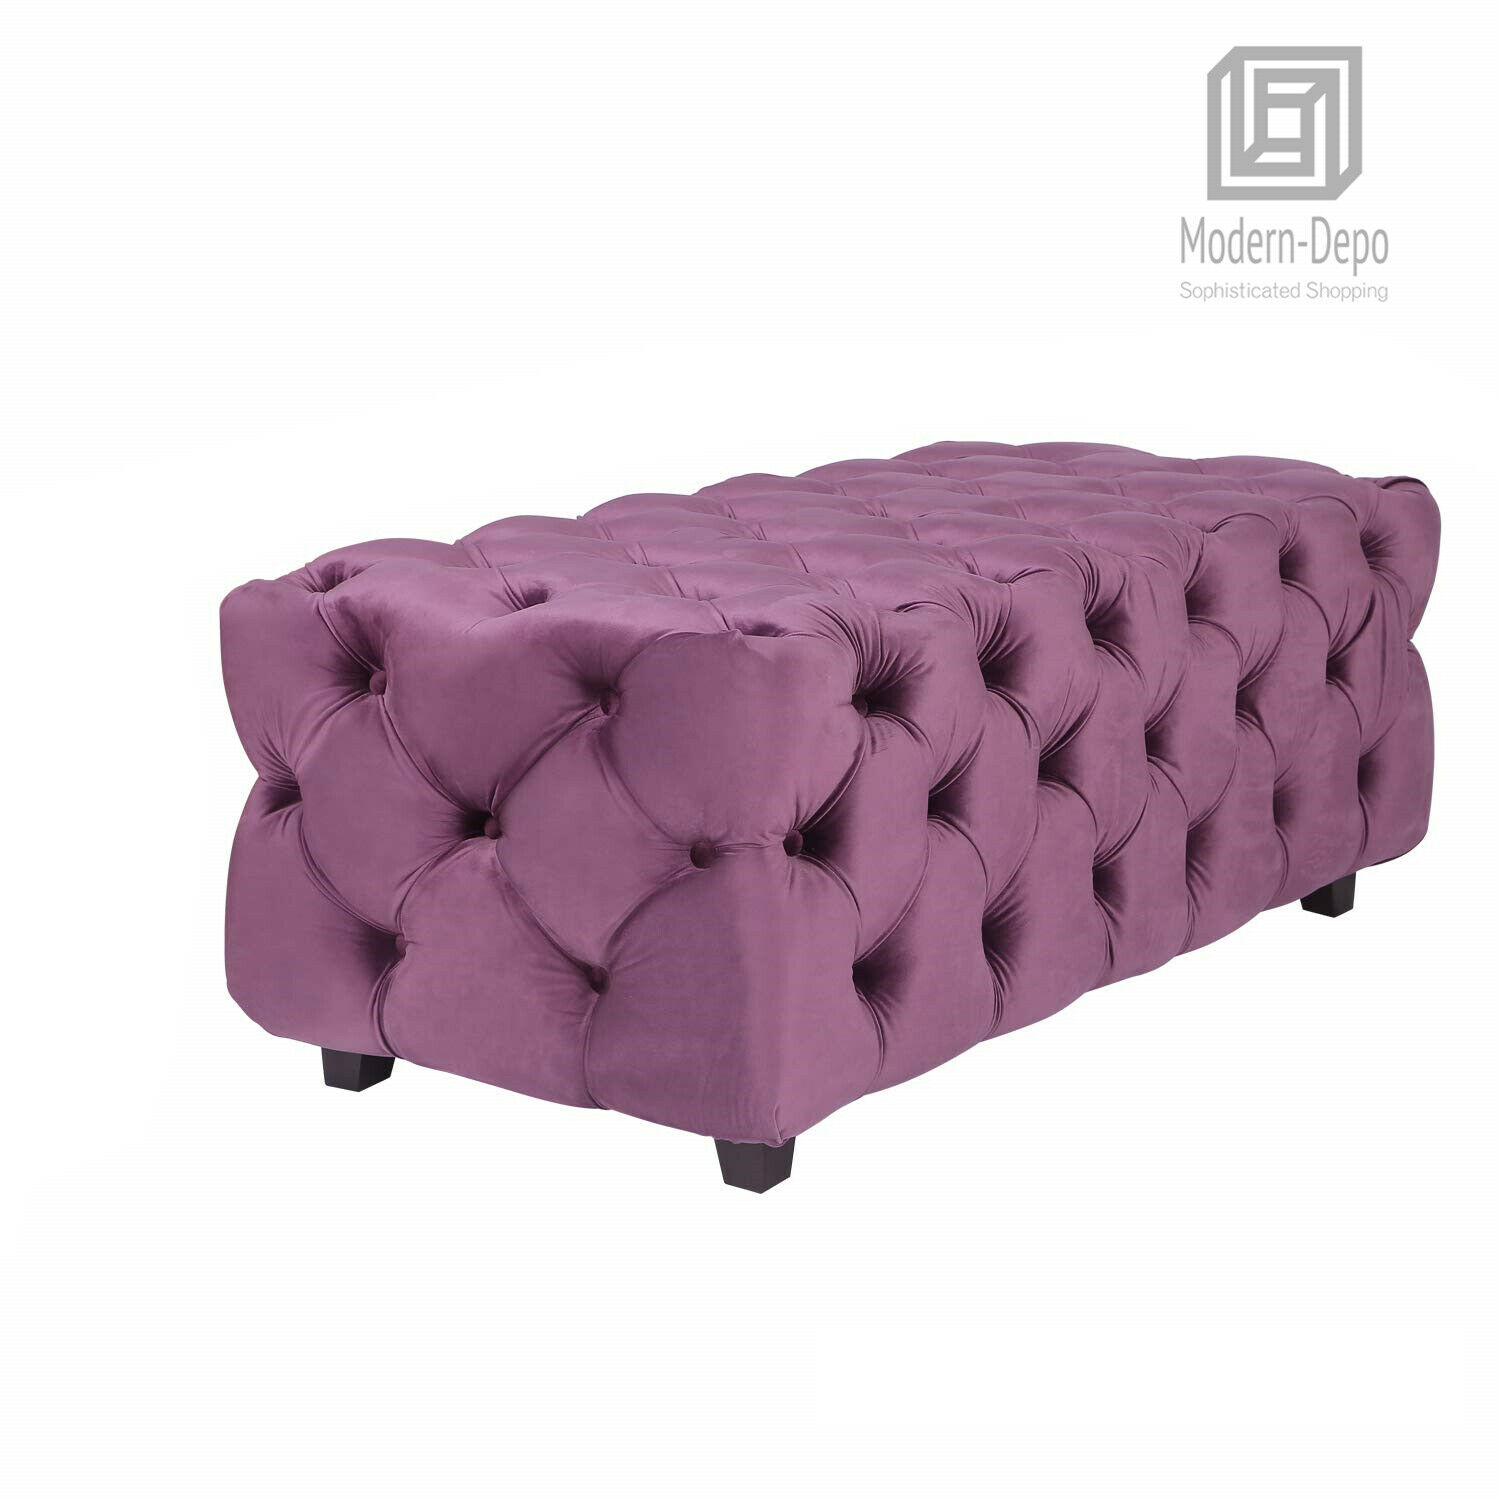 Terrific Tufted Velvet Fabric Rectangle Ottoman Bench Foot Rest Stool For Living Room Gmtry Best Dining Table And Chair Ideas Images Gmtryco